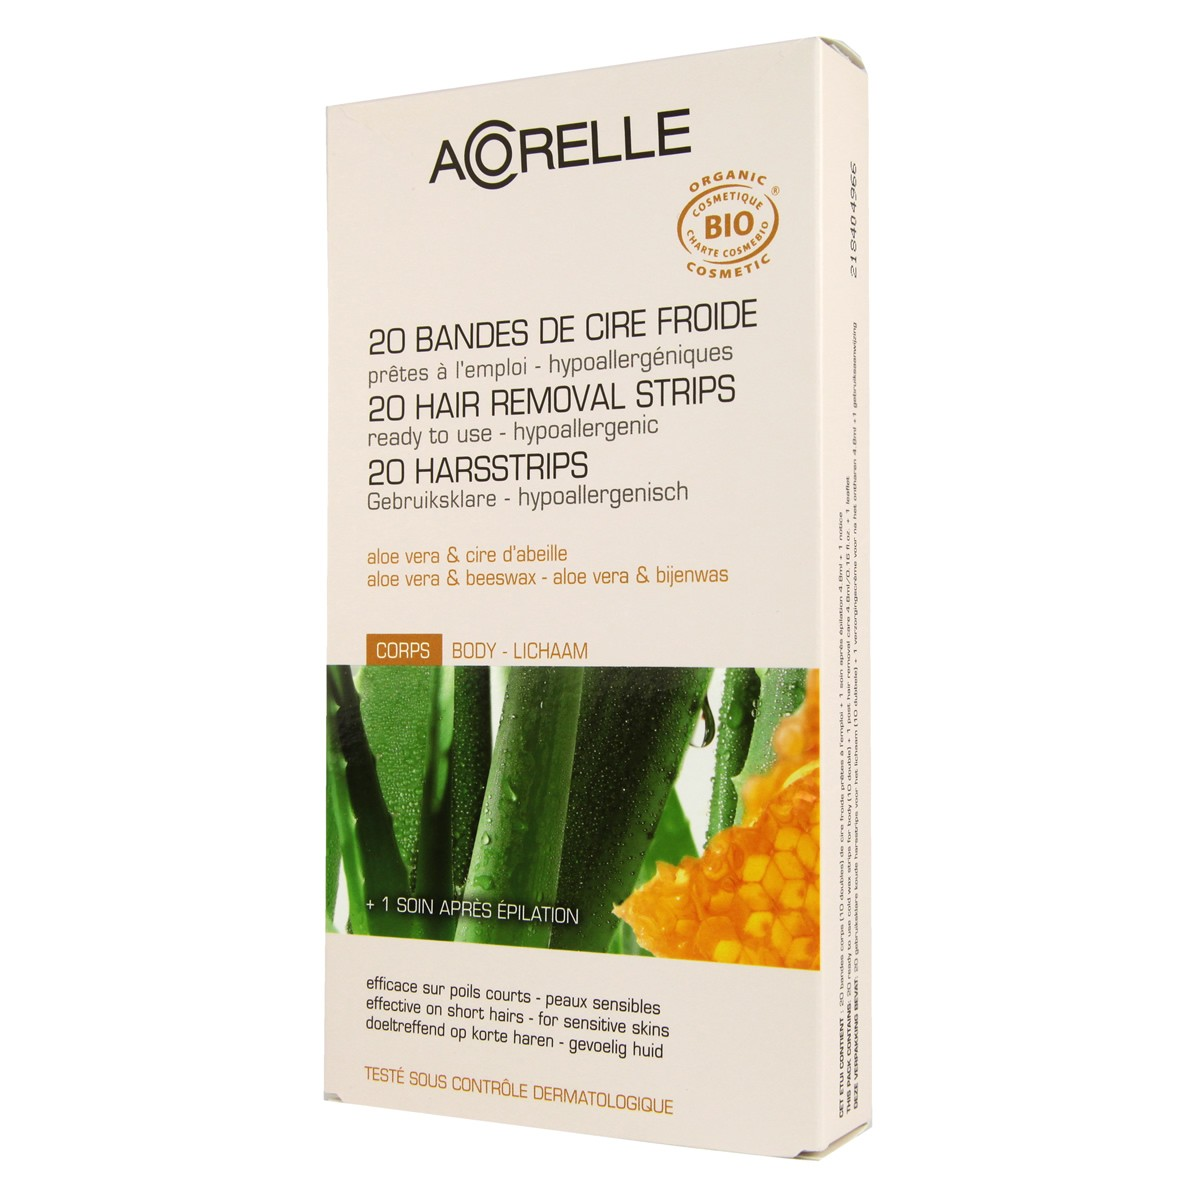 Acorelle Skin Care Body Hair Ready to Use Strips - Aloe Vera & Beeswax